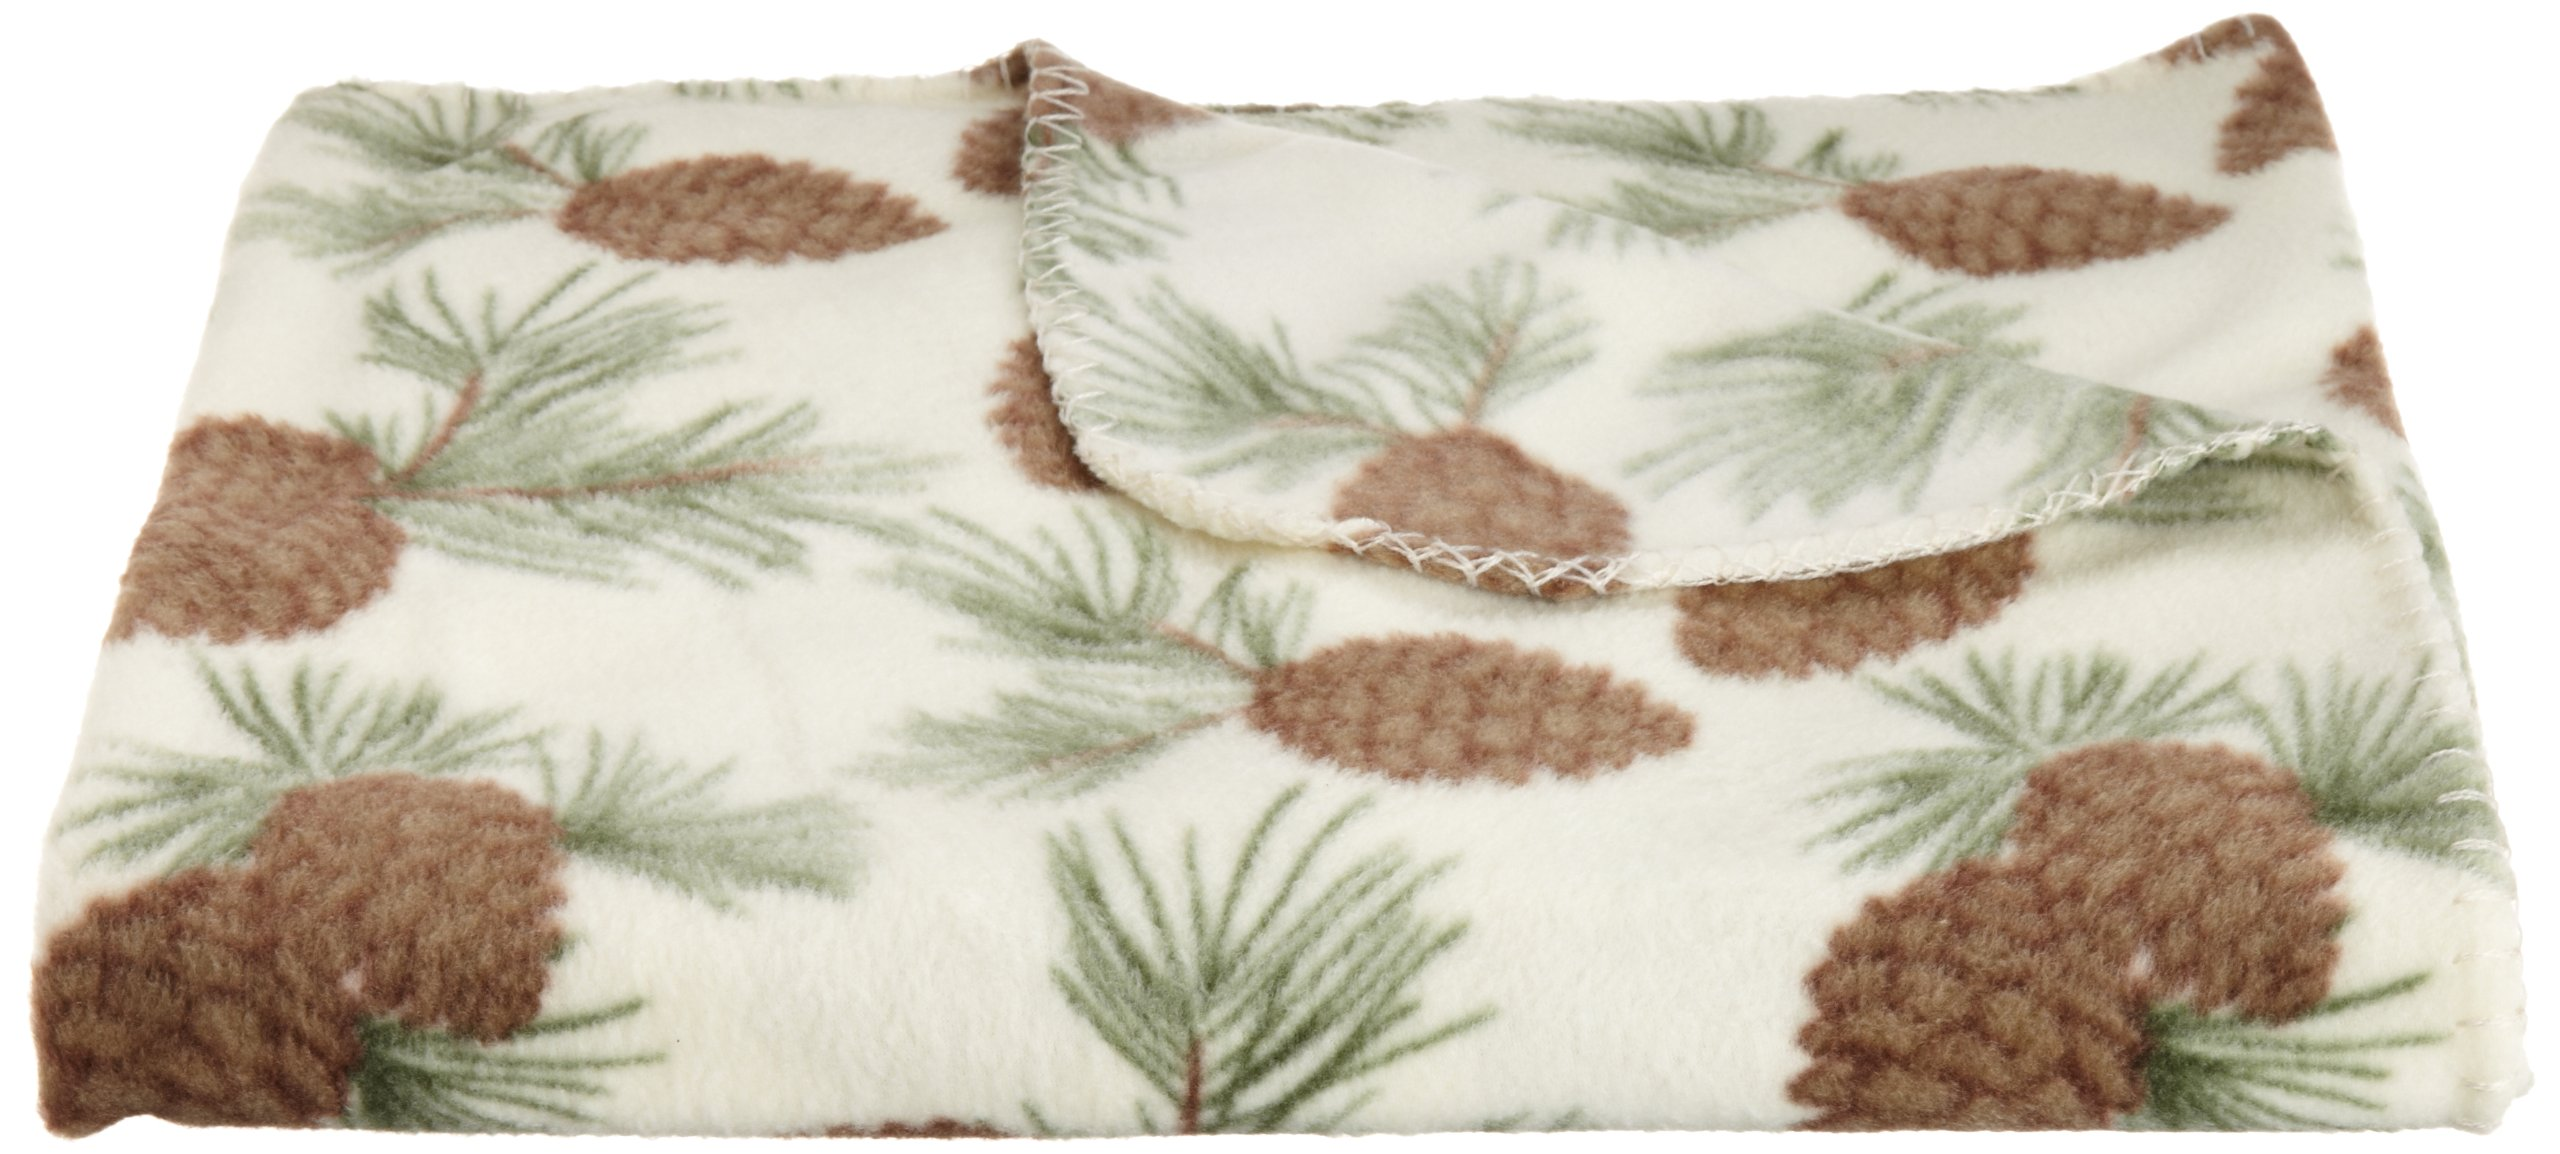 DII Pinecone Lodge Fleece Throw, 50 by 60-Inch